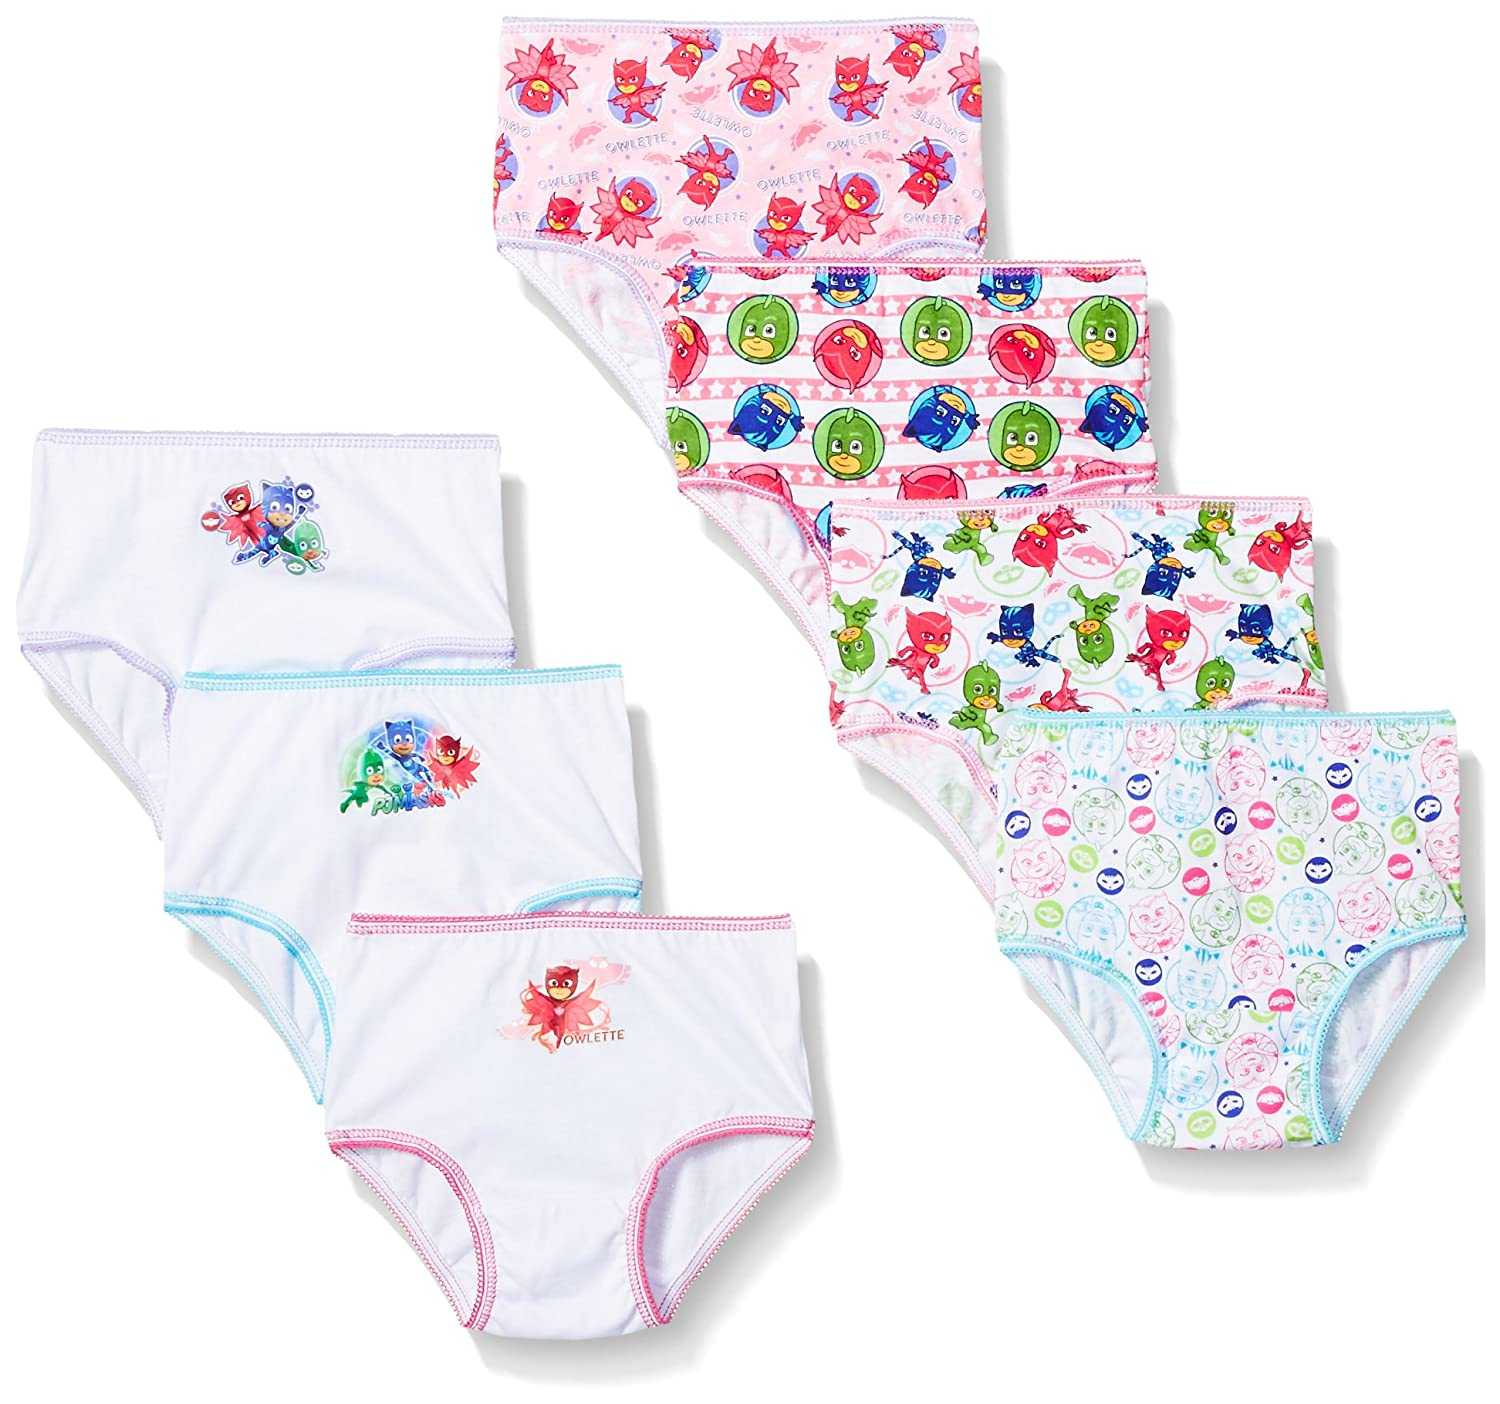 PJ Masks Girls 7-Pack Brief Bikini Panty Toddler Underwear TGUP5108